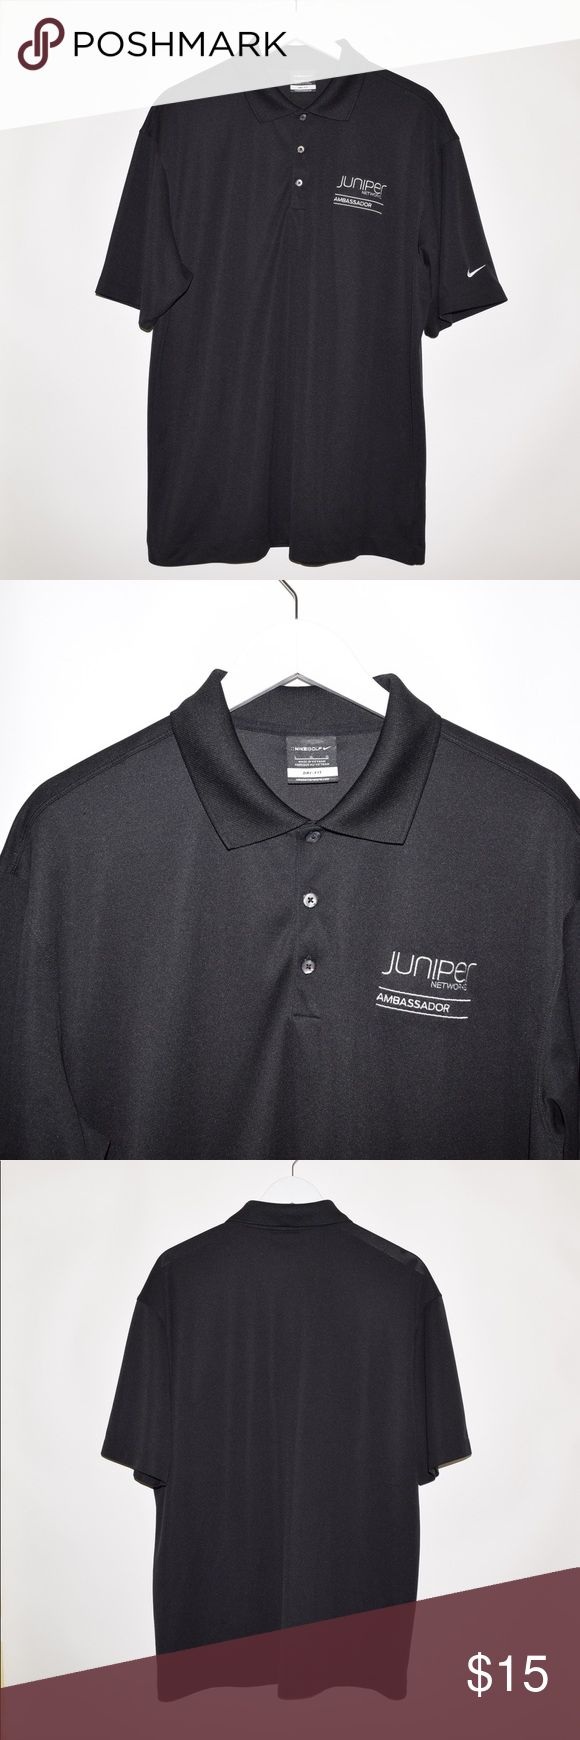 Nike Golf Dri-Fit Embroidered Polyester Polo Shirt Brand: Nike Golf Item name: Men's Dri-Fit Polyester Polo Shirt w/ custom Juniper Networks embroidery on chest   Color: Black Condition: This is a pre-owned item. It is in excellent condition with no stains, rips, holes, etc.Comes from a smoke free household. Size: Large Measurements laying flat: Pit to pit - 23 inches Neckline to base - 29.5 inches Nike Shirts Polos